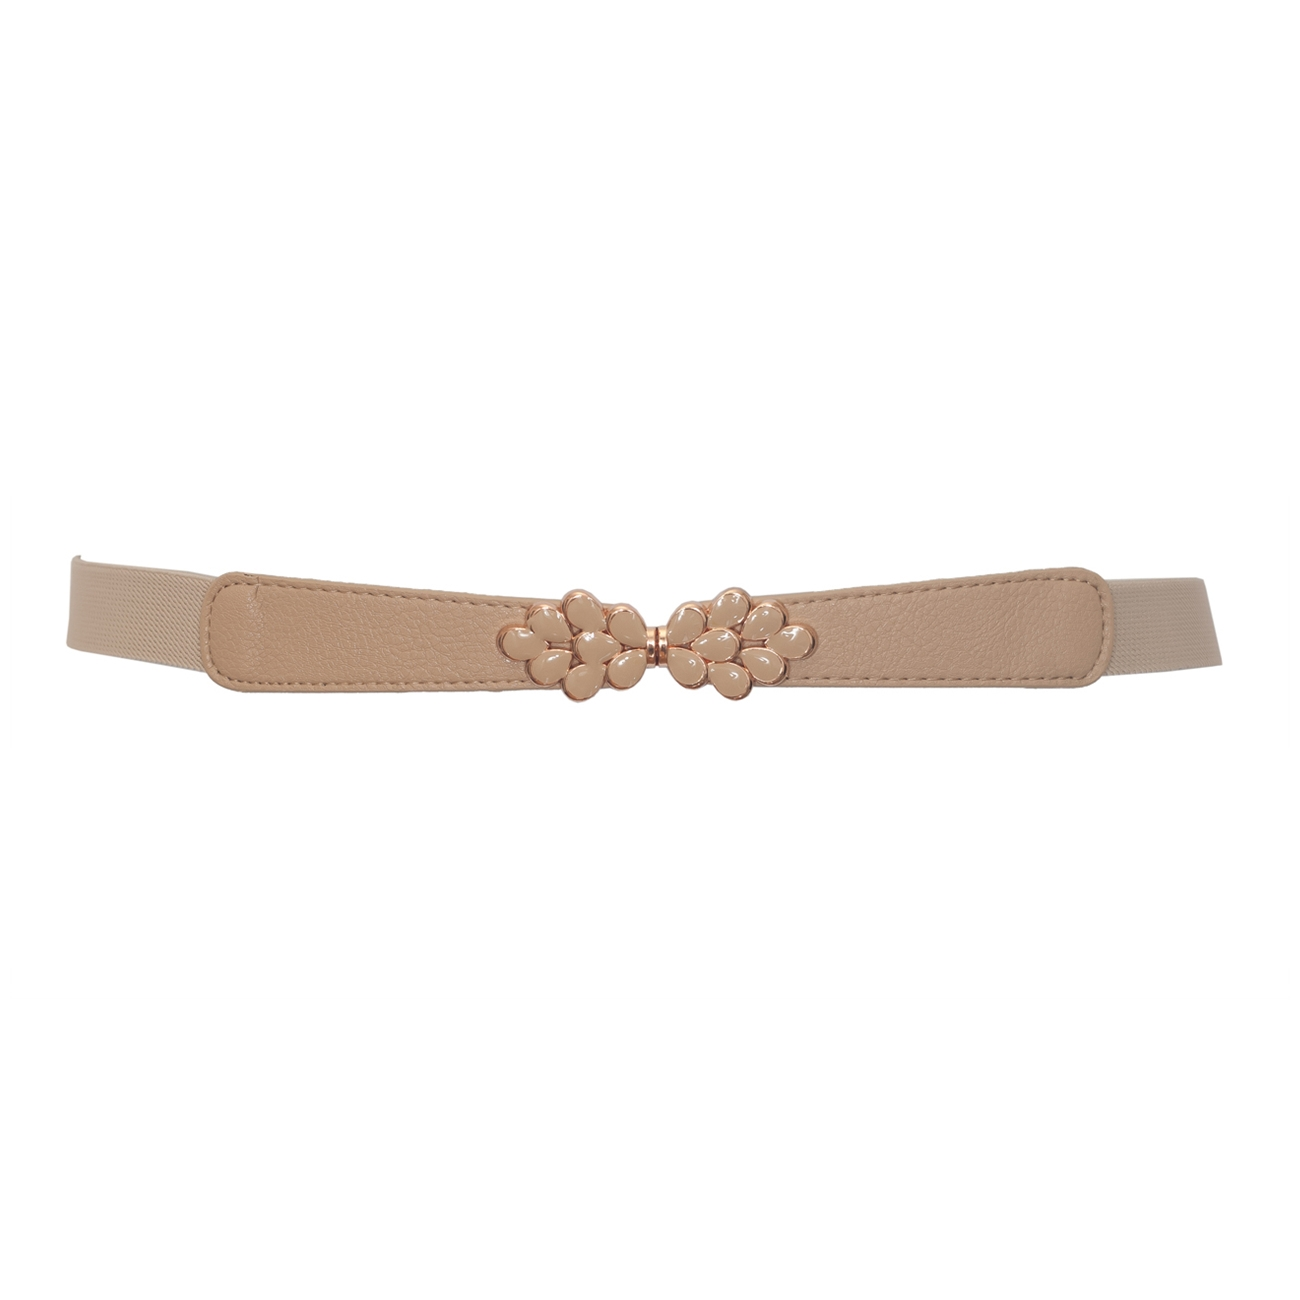 Plus size Flower Buckle Skinny Elastic Belt Beige